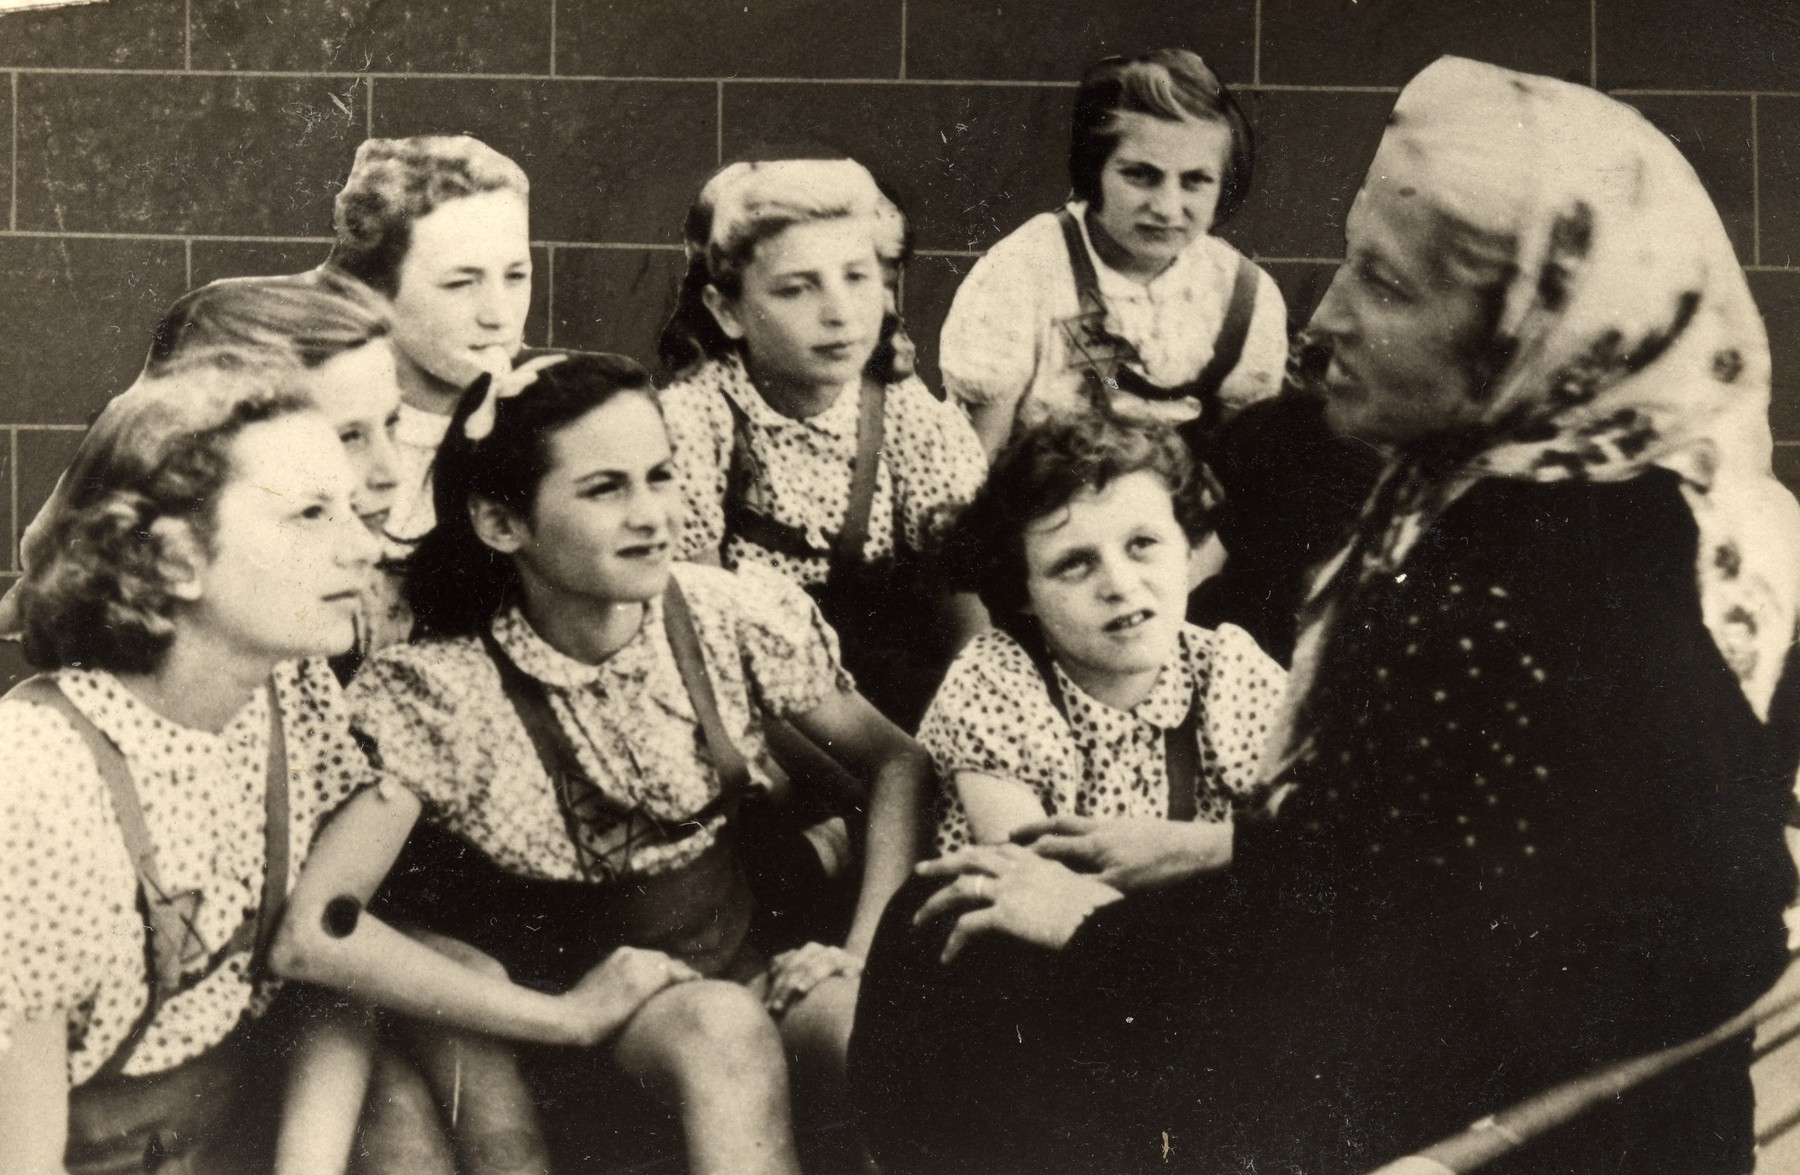 Stella Rein, the headmaster of the Lodz ghetto's high-school, talks to a group of young girls wearing similar blouses.